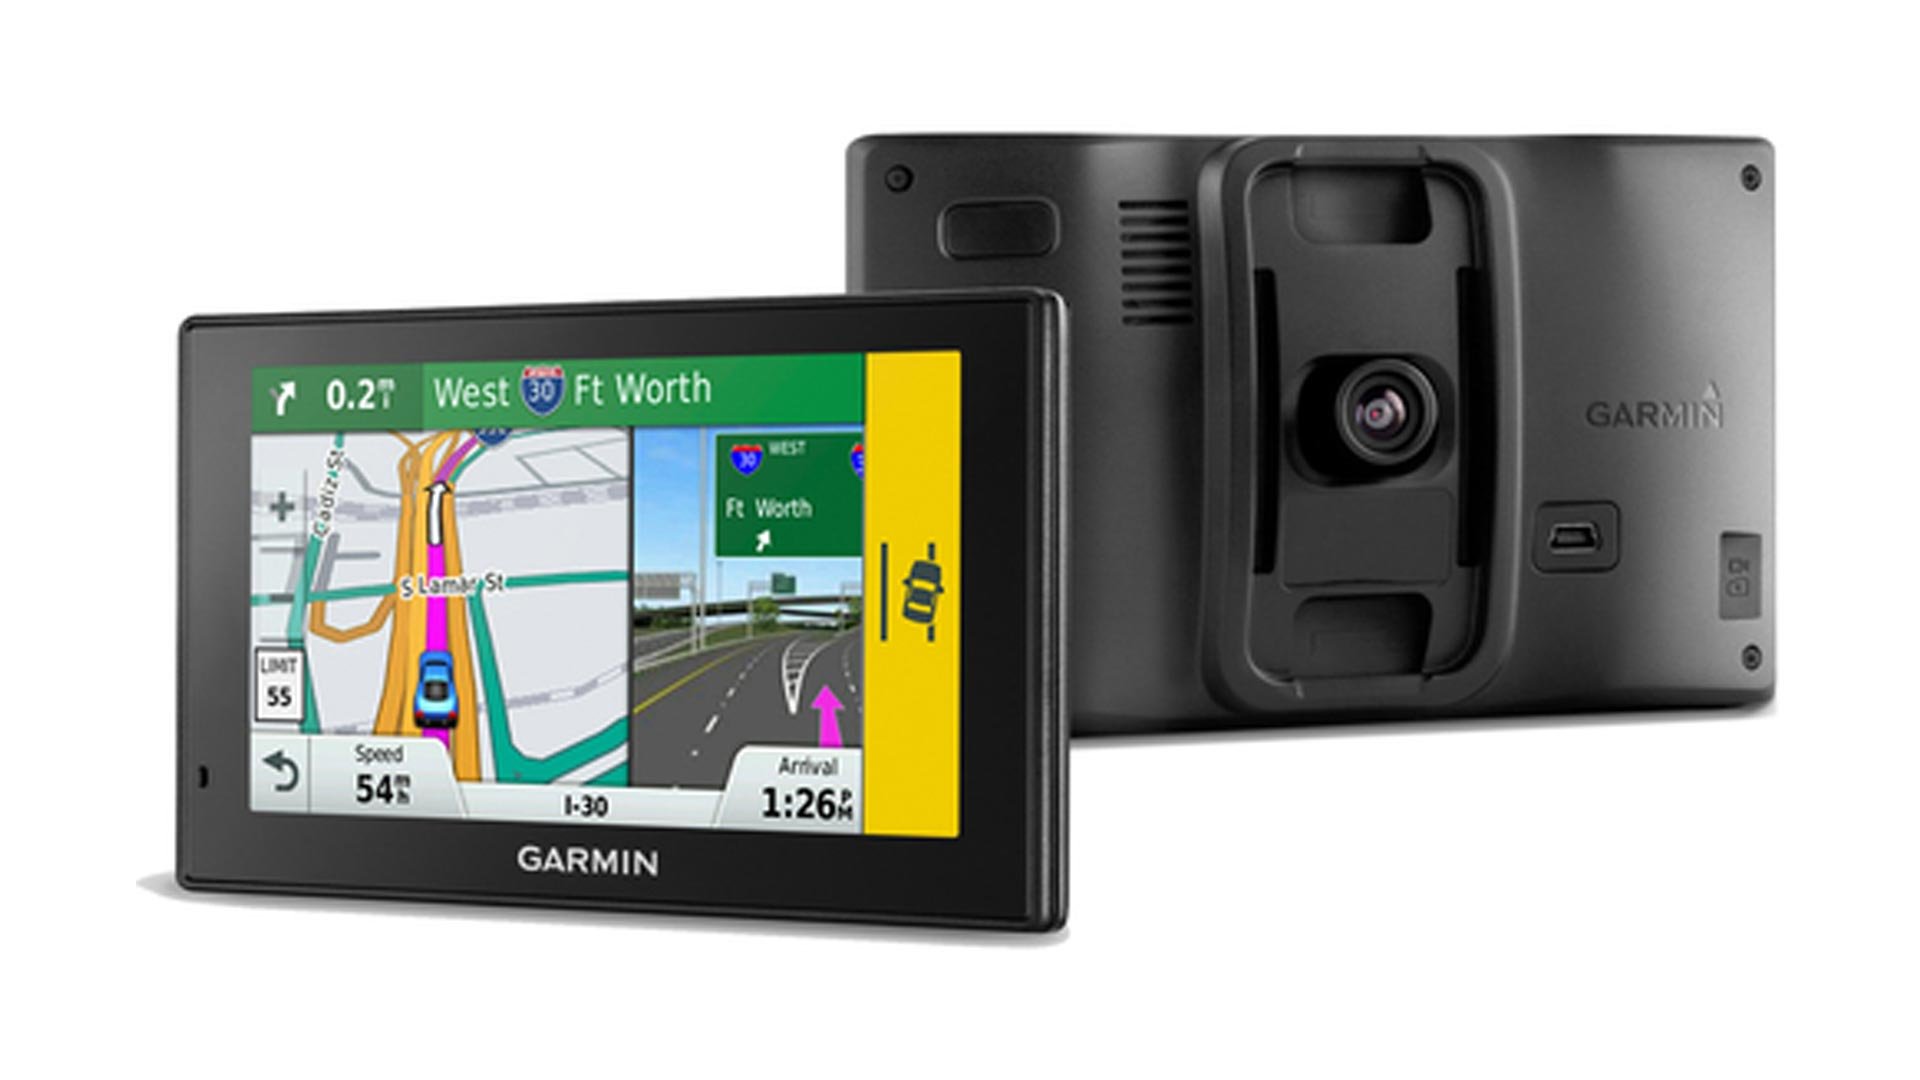 This Garmin GPS helps banish clutter w/ its built-in Dash Cam: $109 (Refurb, Orig. $300)